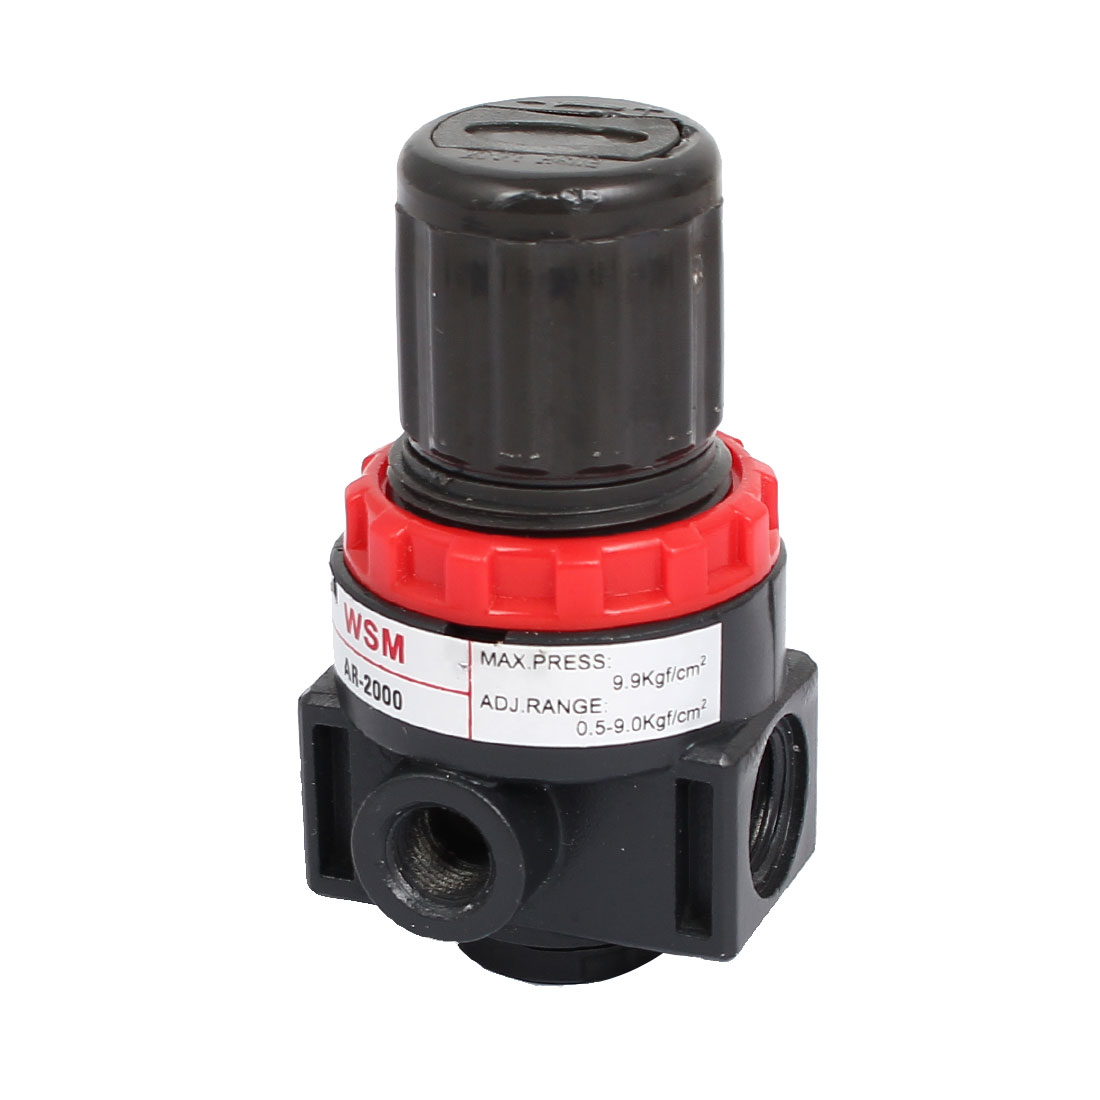 AR-2000 Pneumatic Source Treatment Air Filter Pressure Regulator 0.5-9Kgf/cm2